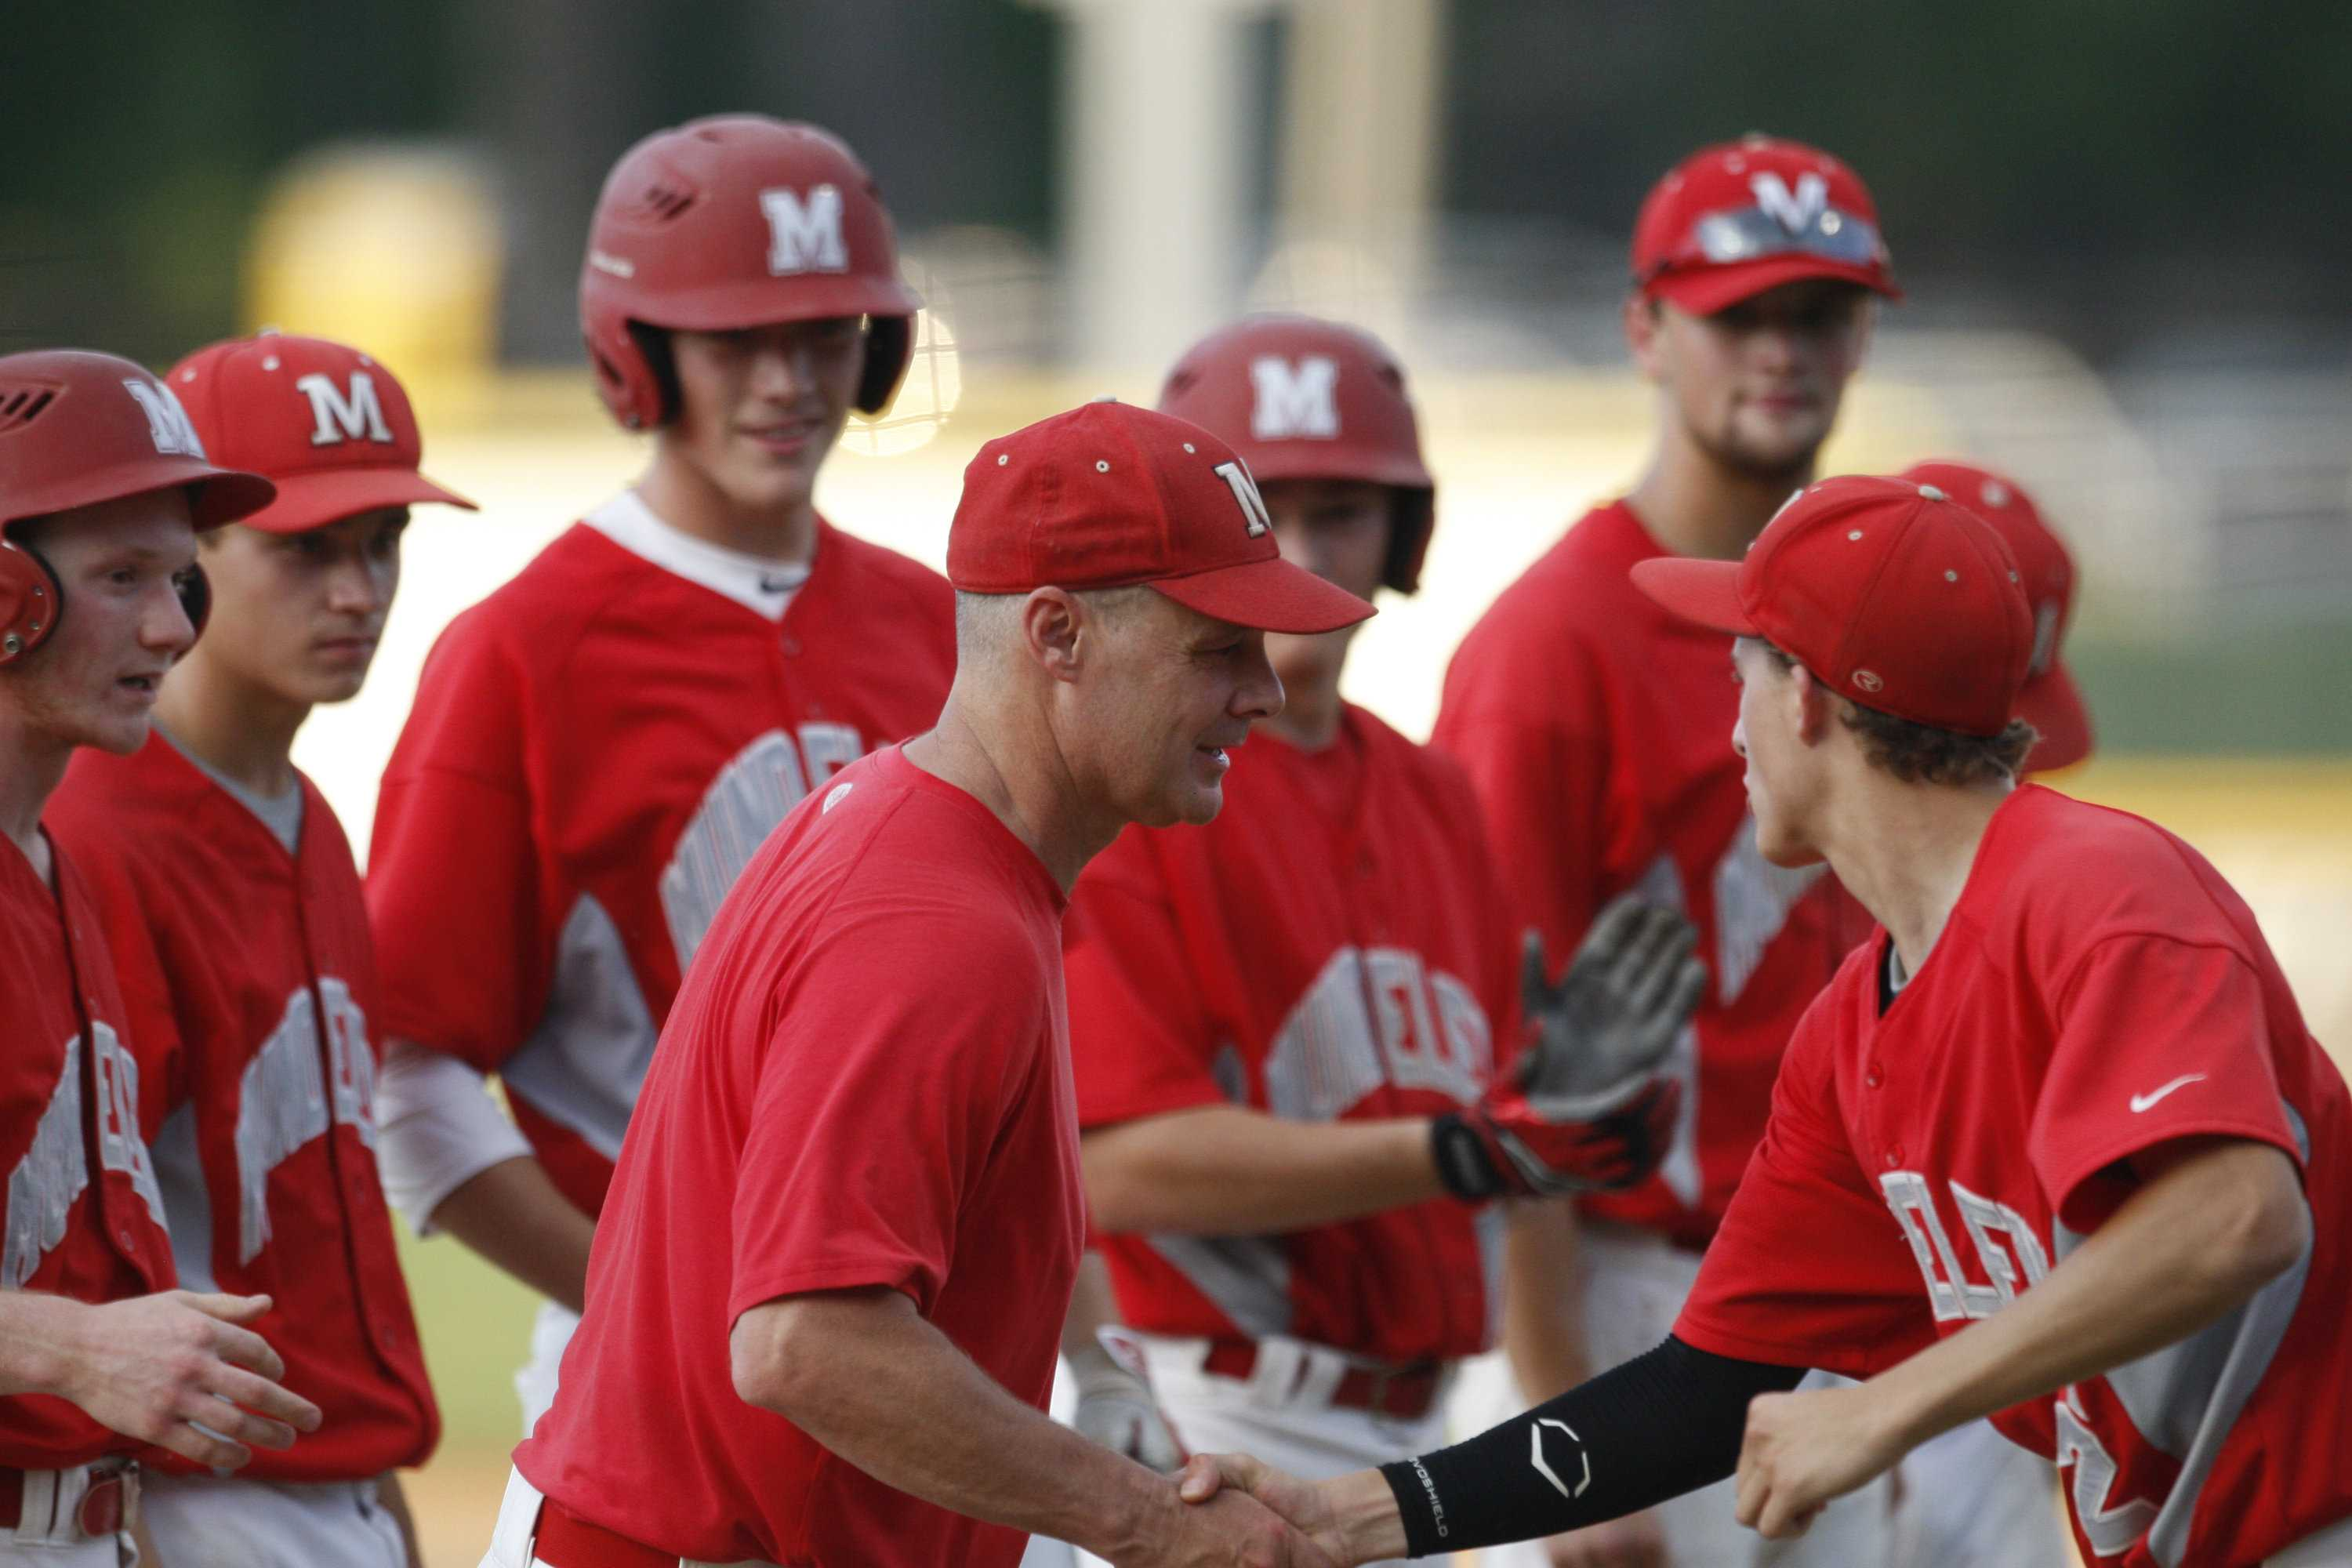 Baseball Head Coach Todd Parola led his 2016 team to the state championship where MHS placed second.